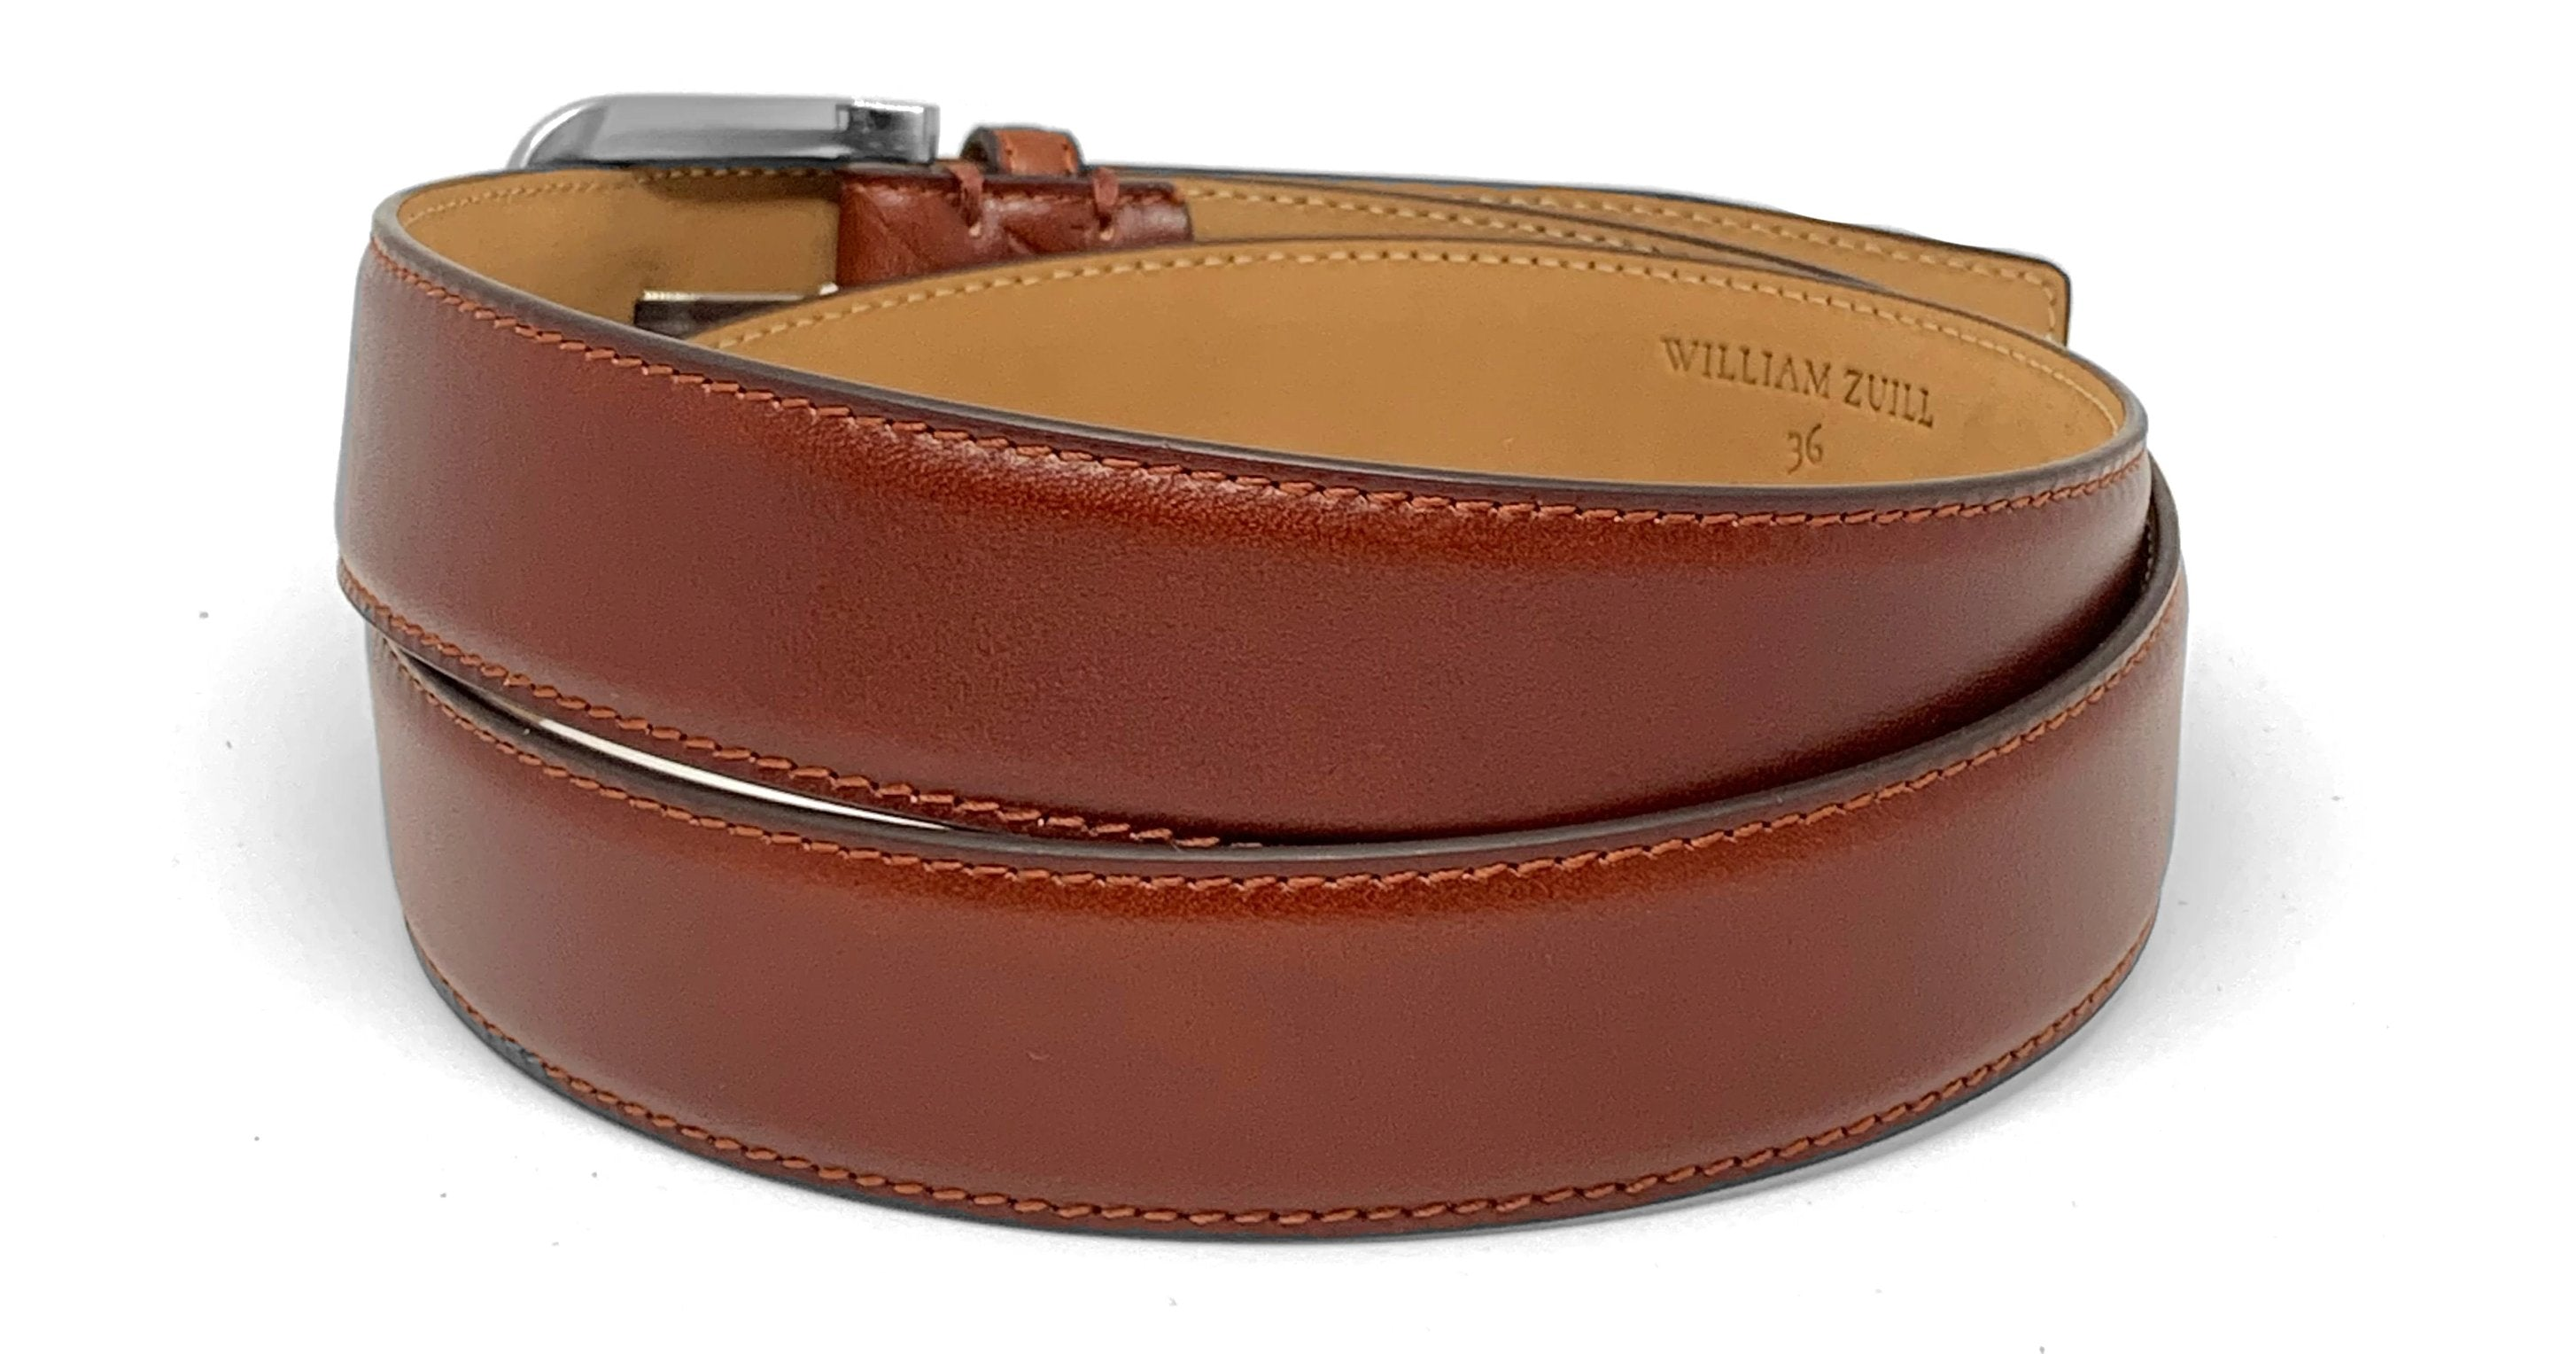 Men's belts - William Zuill - Leather belts - pattern belts - unique belts